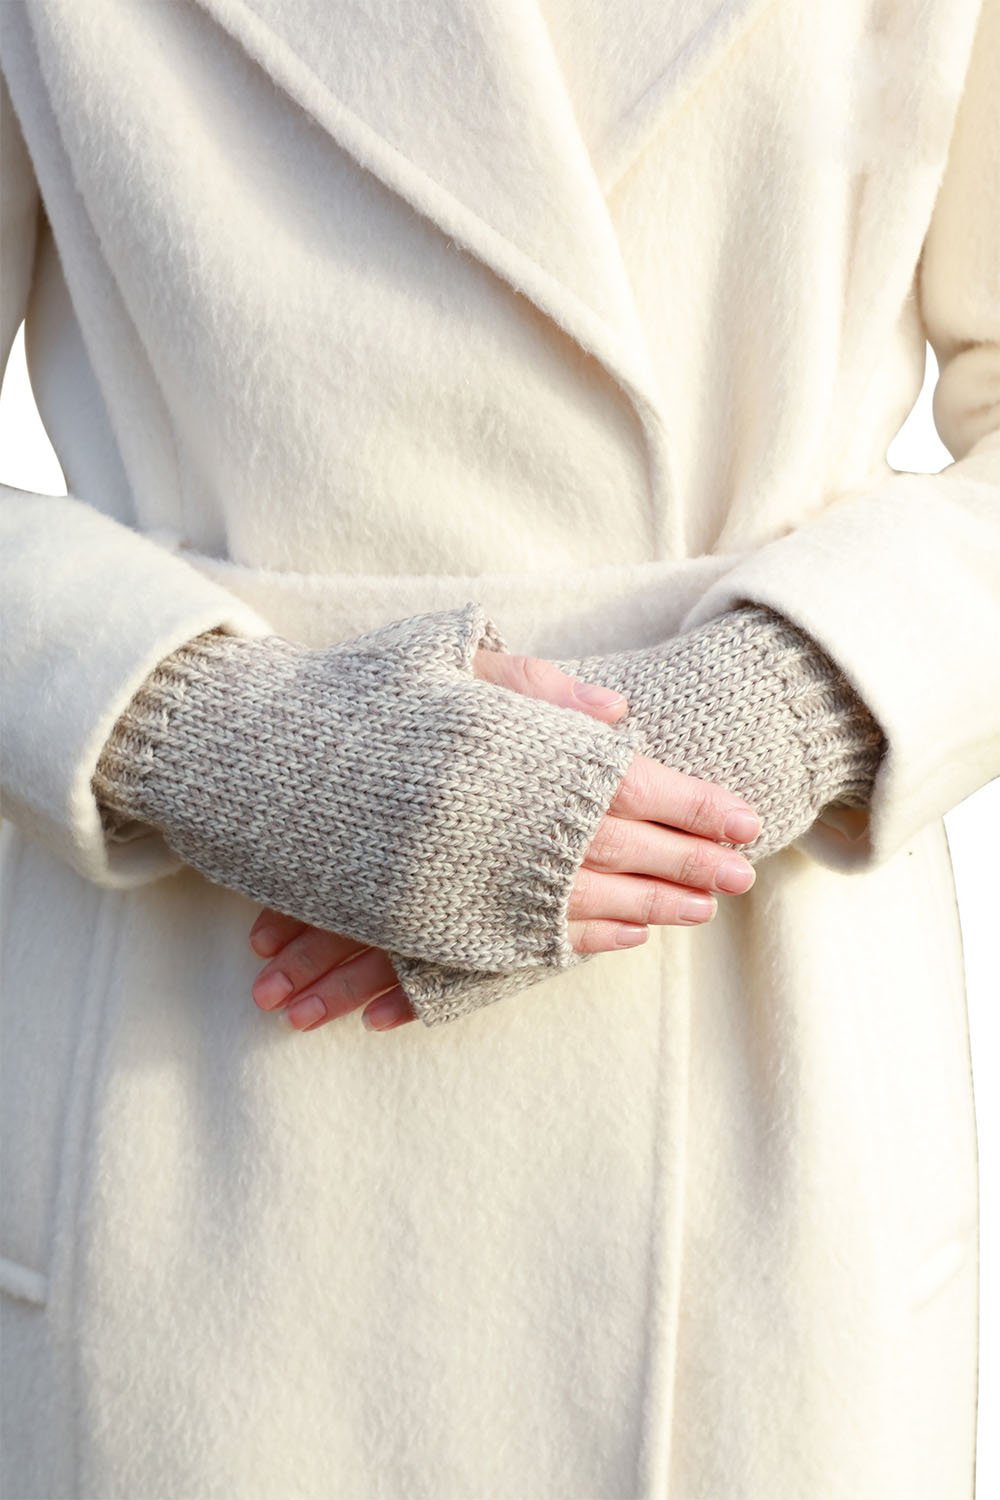 SuperSoft Merino Wool Fingerless Knit Gloves (Toasted Oat)